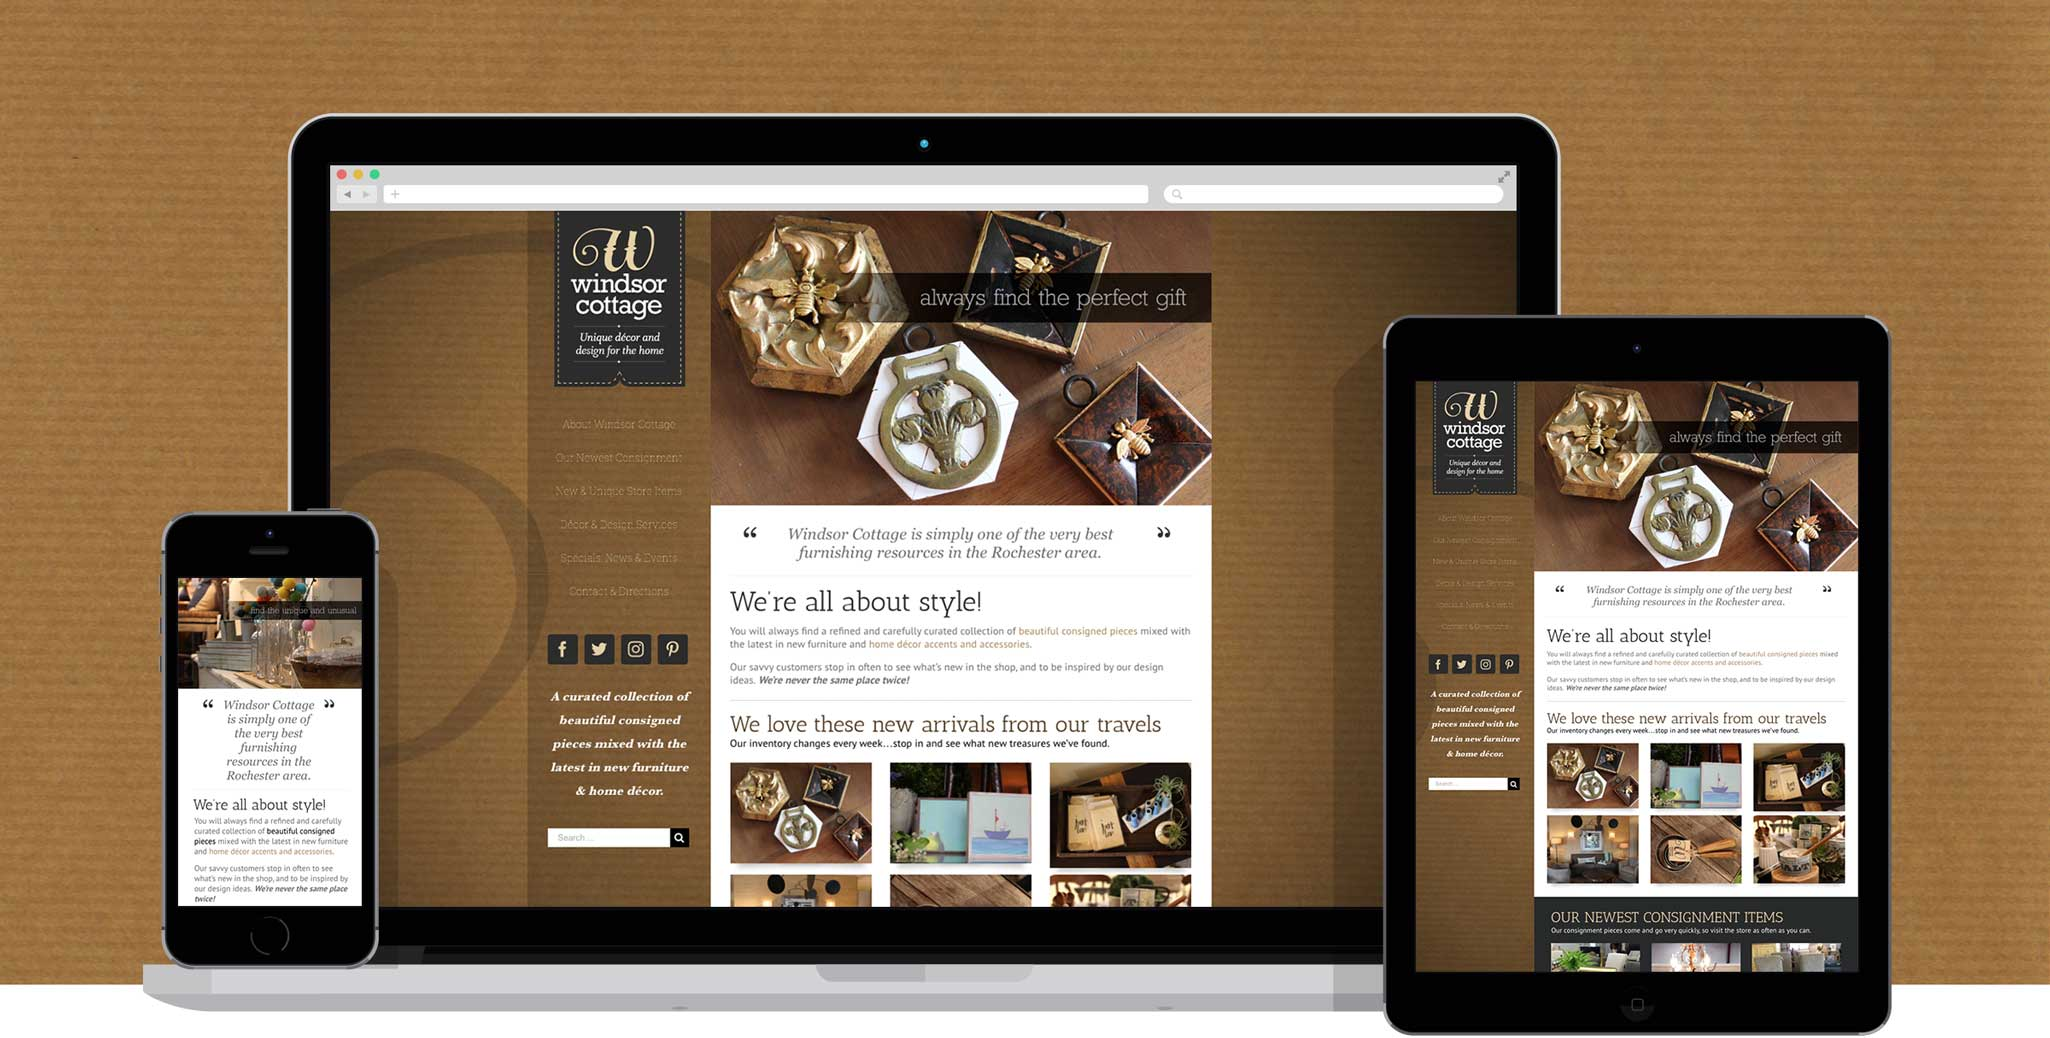 Photo of web design samples for Windsor Cottage, including responsive web designs on an iPhone and iPad